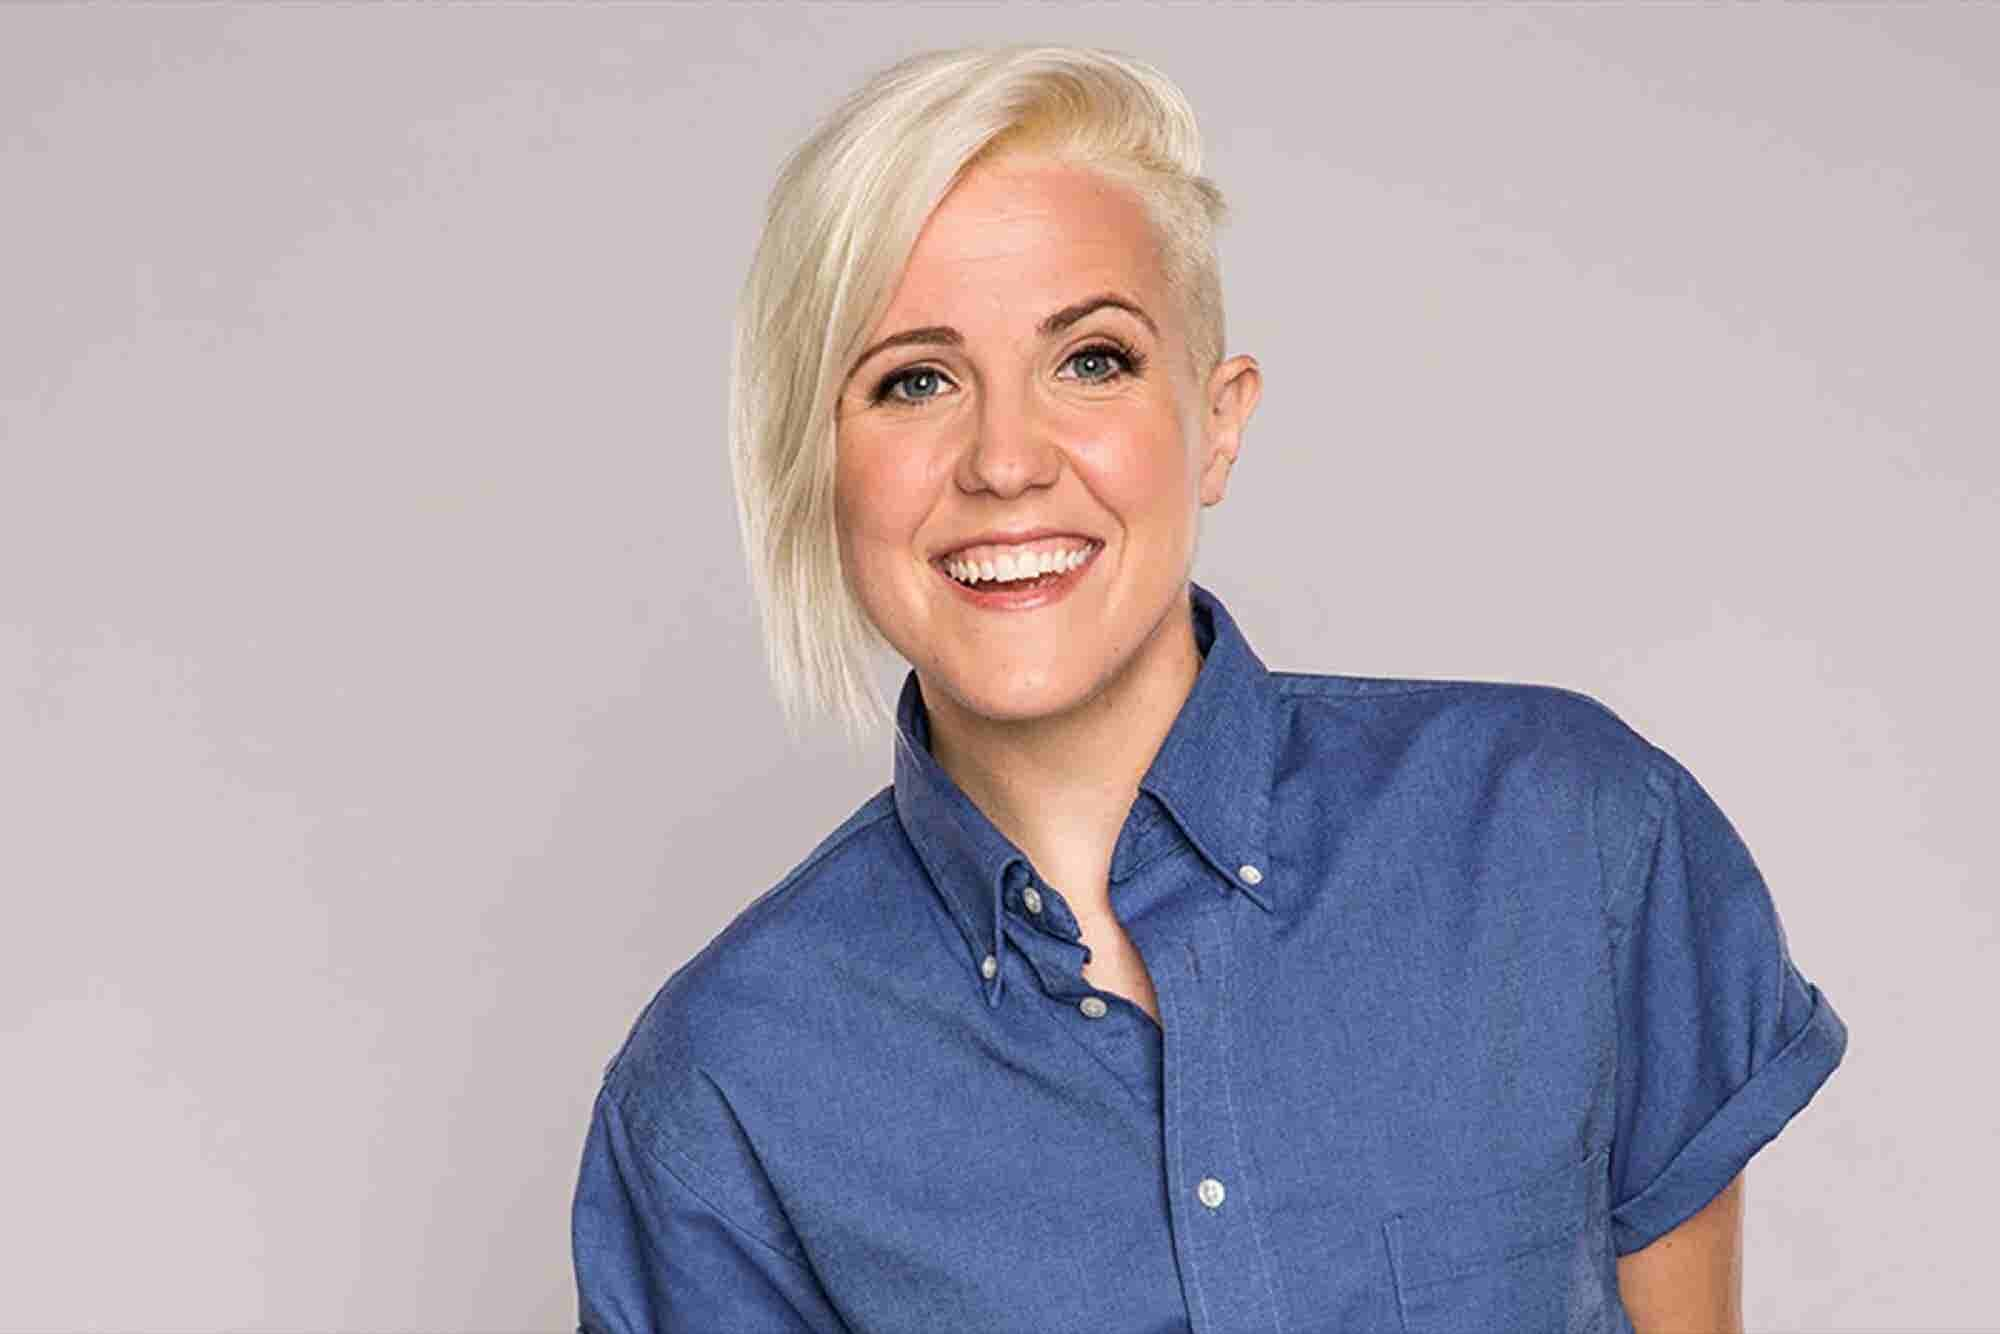 Hannah Hart Shares the Secrets That Led Her to Go From Working Part Time to Running a YouTube Empire